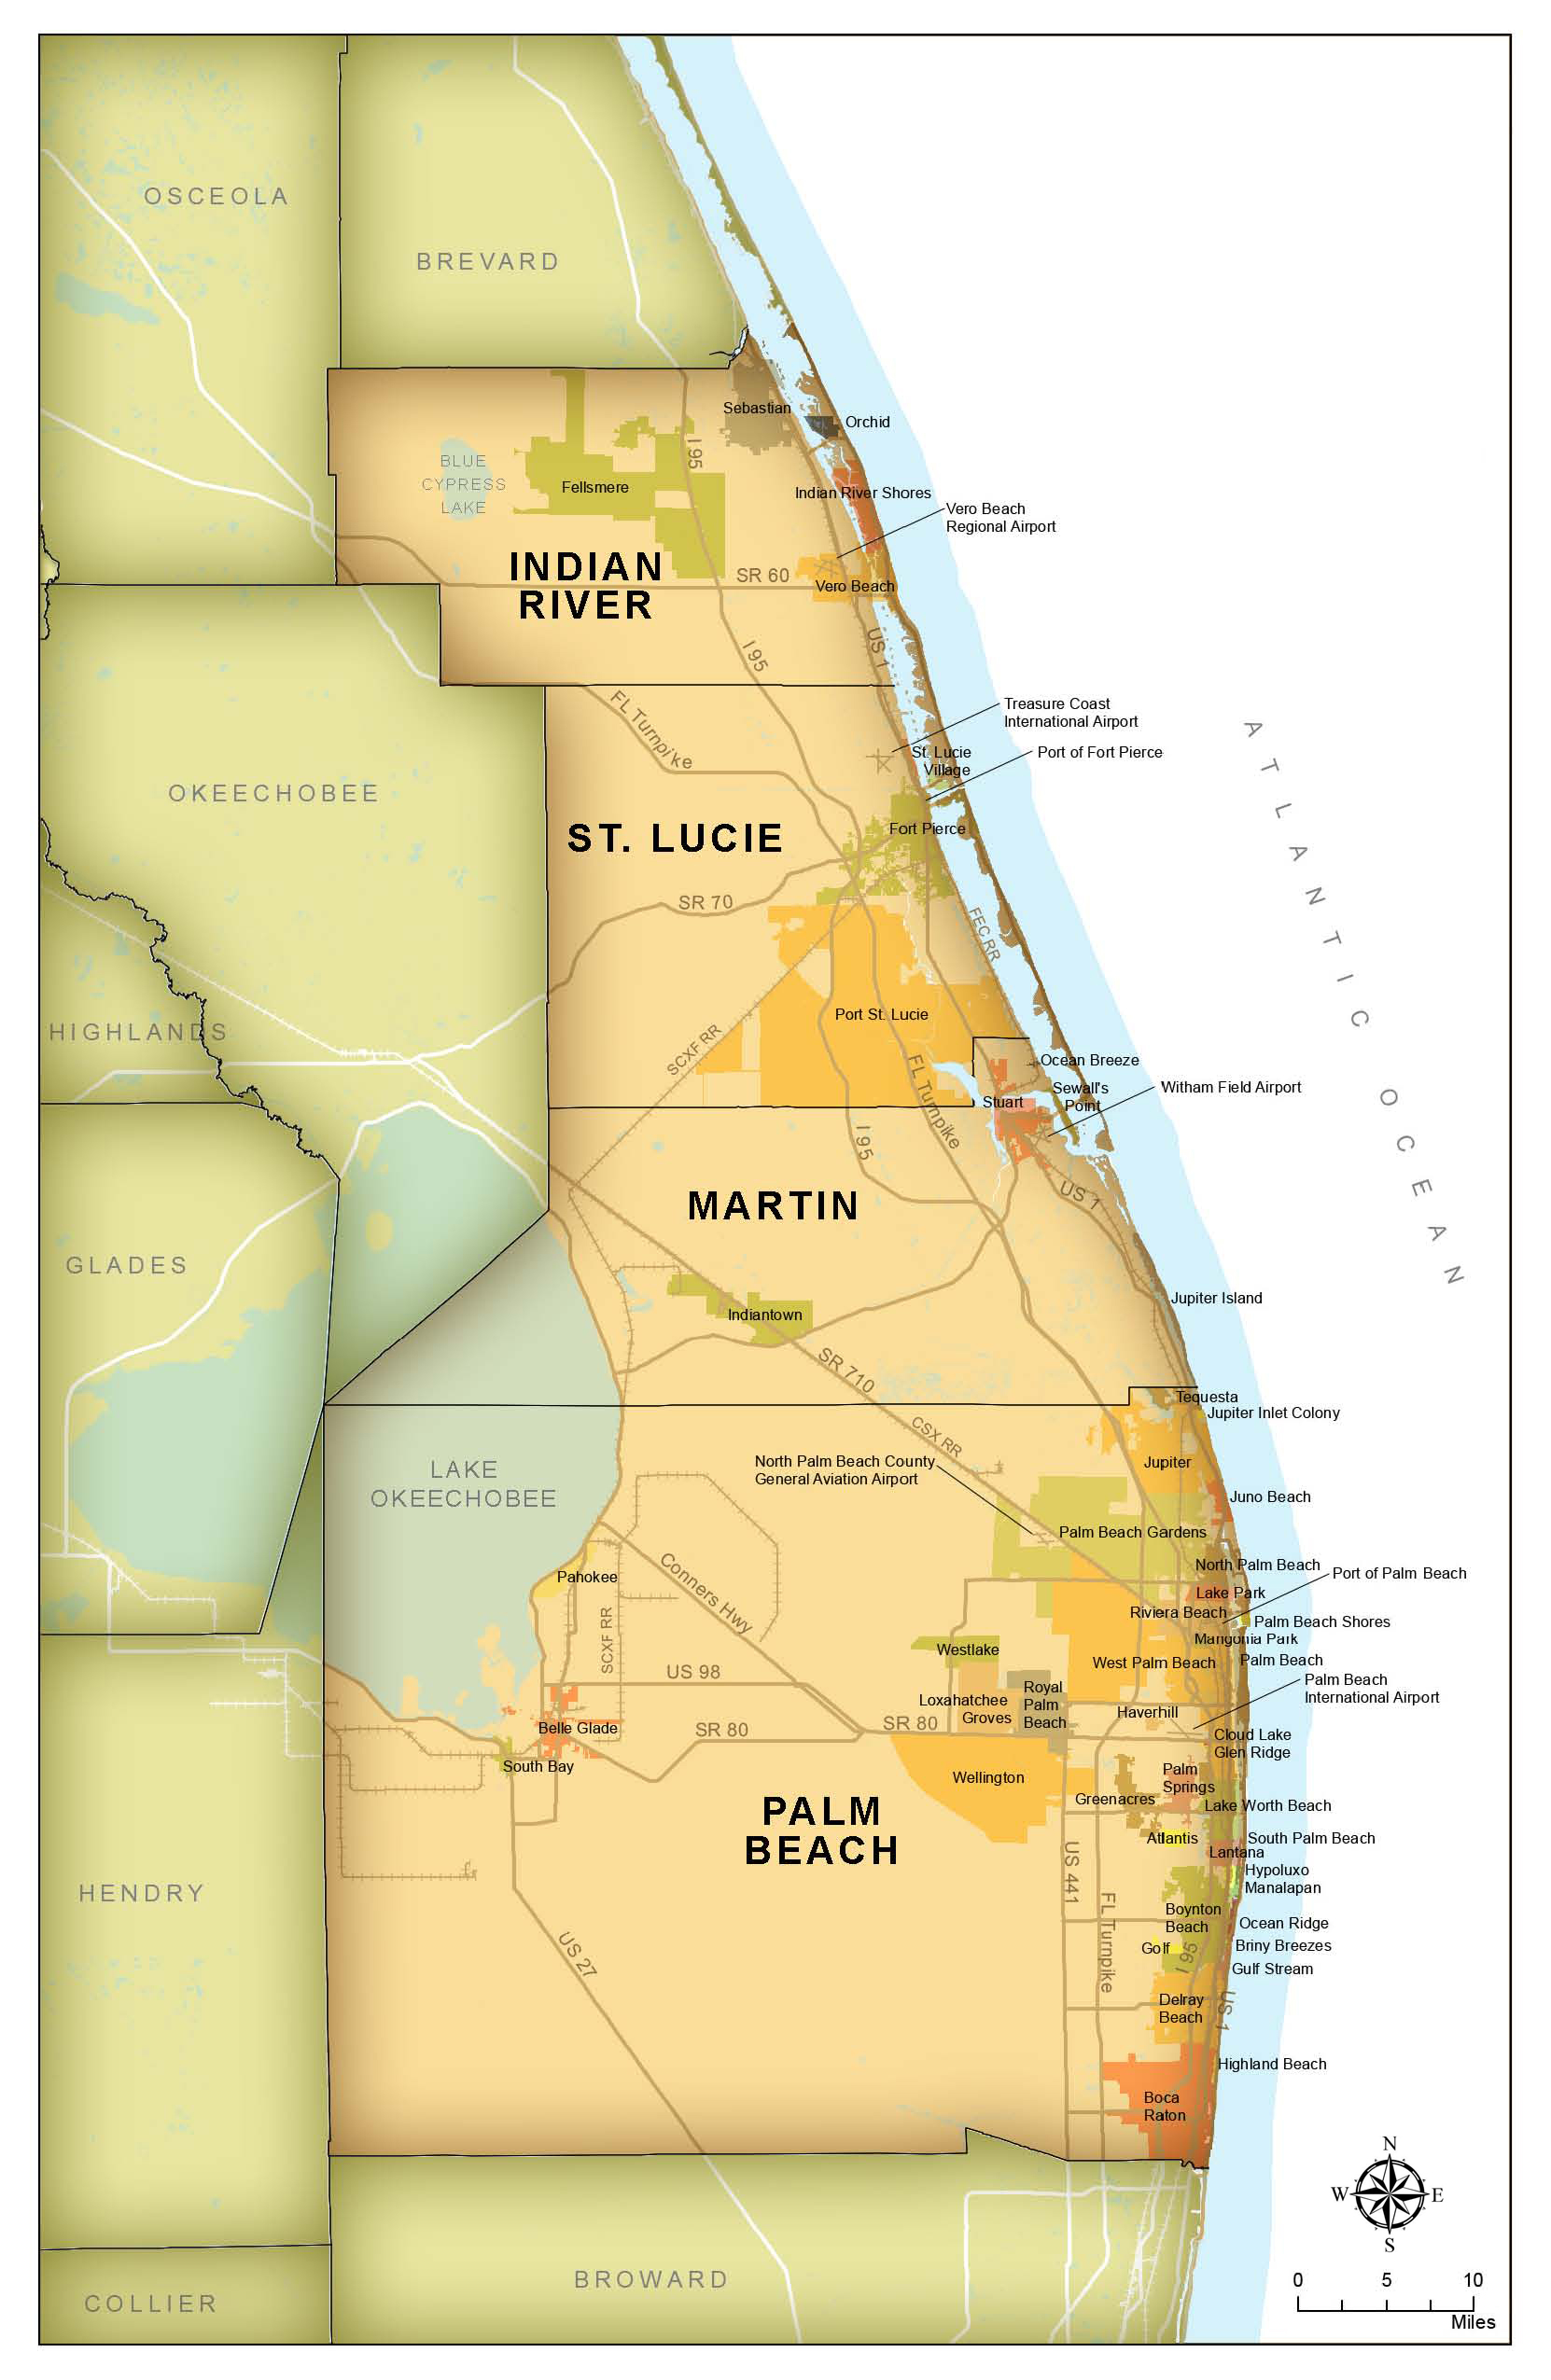 Map of Region which includes Palm Beach, Martin, St Lucie and Indian River Counties